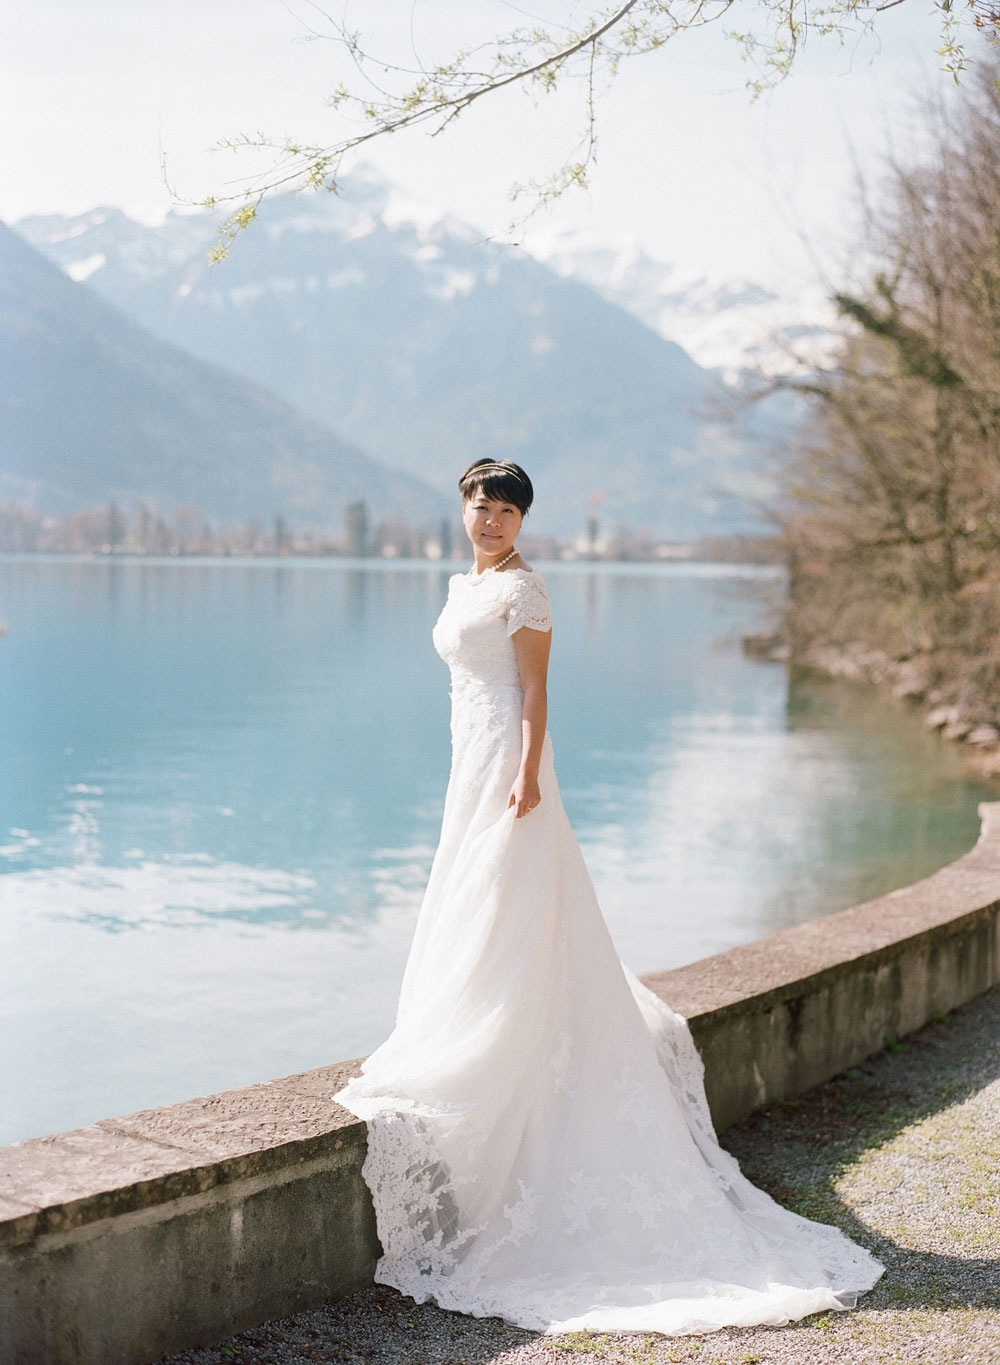 Minnie-William-prewedding-pictures-Interlaken-Luzern-12.jpg